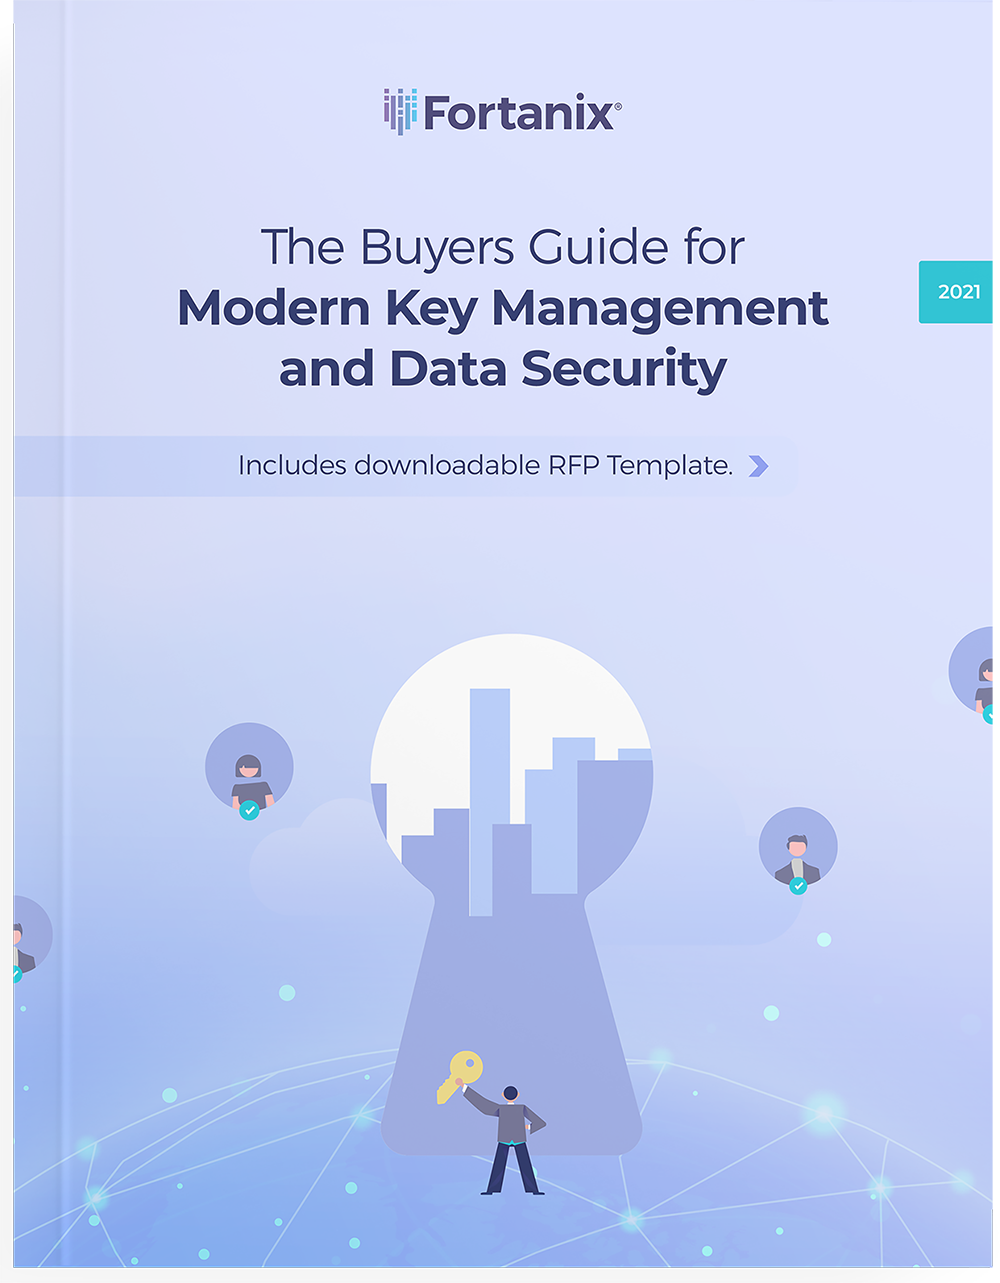 The Buyers Guide for Modern Key Management and Data Security image